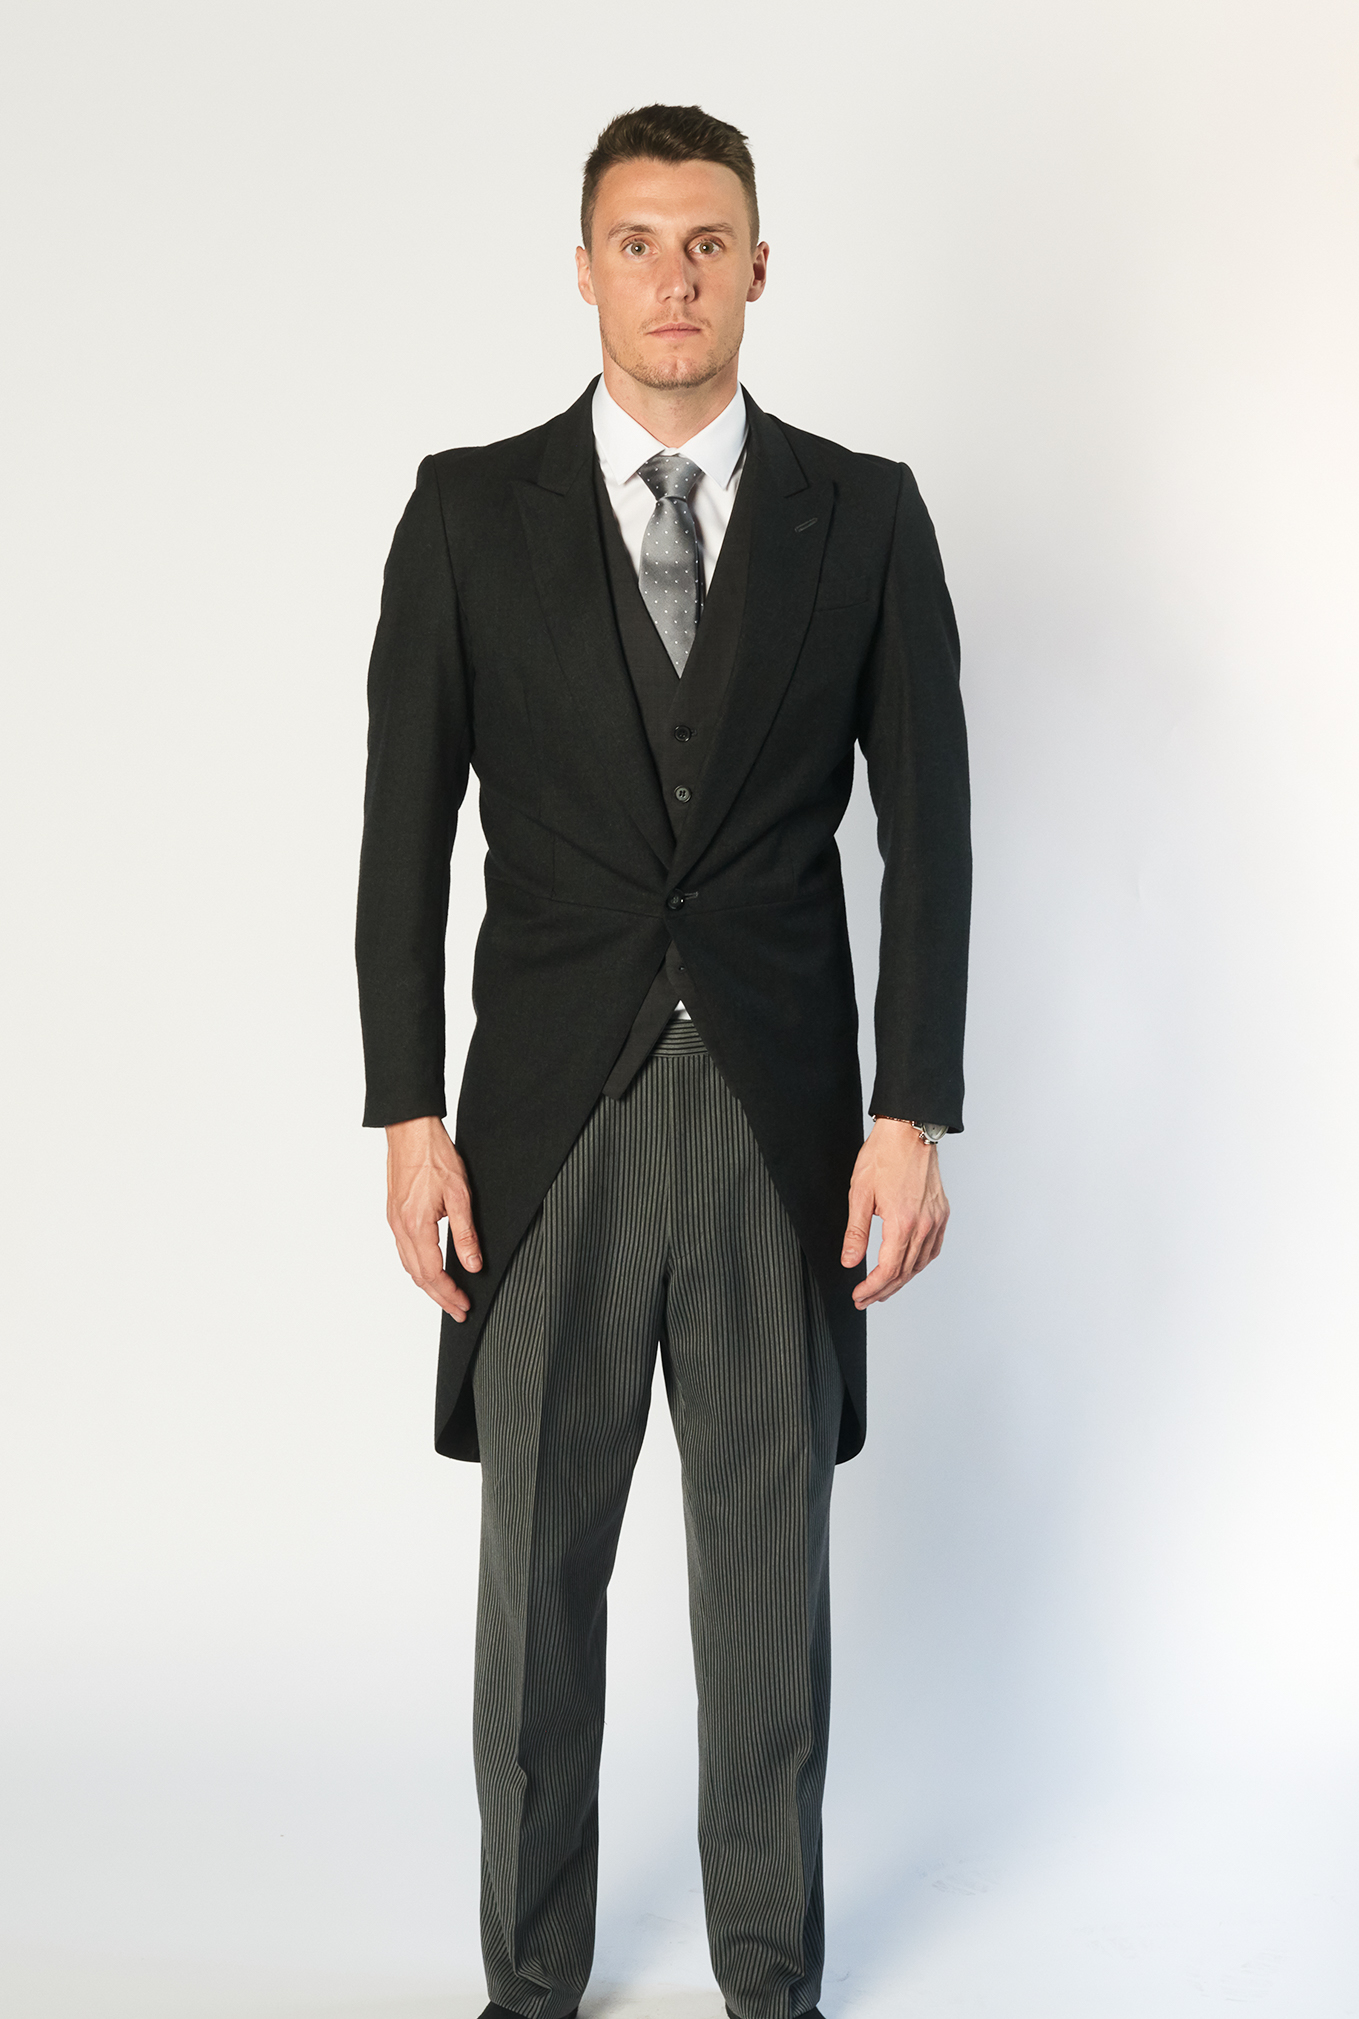 The Morning Suit with black jacket